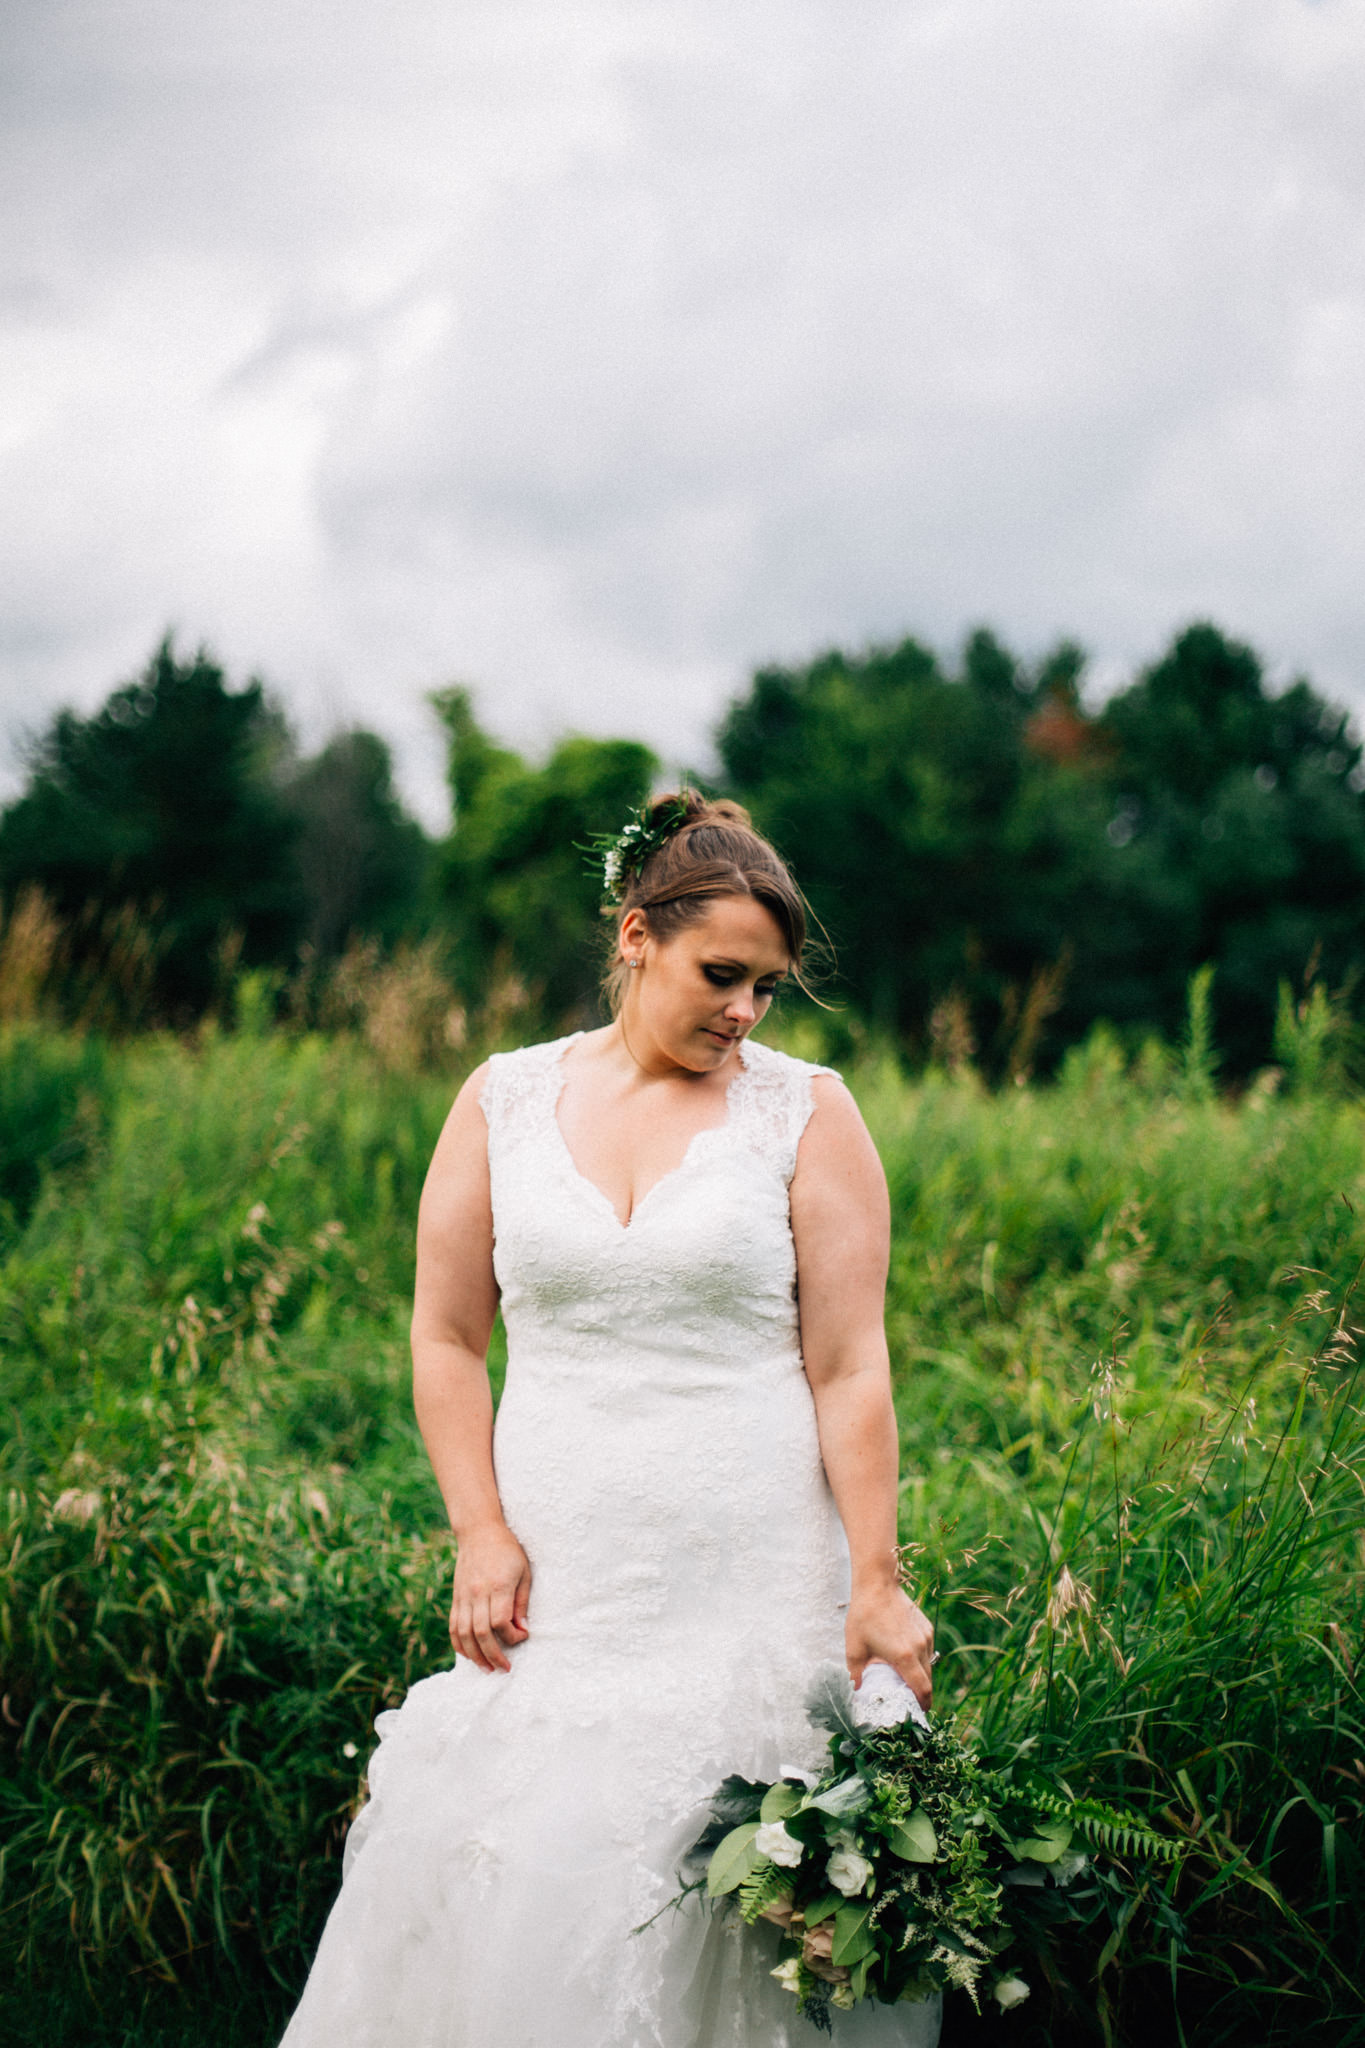 Orillia intimate outdoor wedding at Northbrook Farms by Max Wong Photo (40)